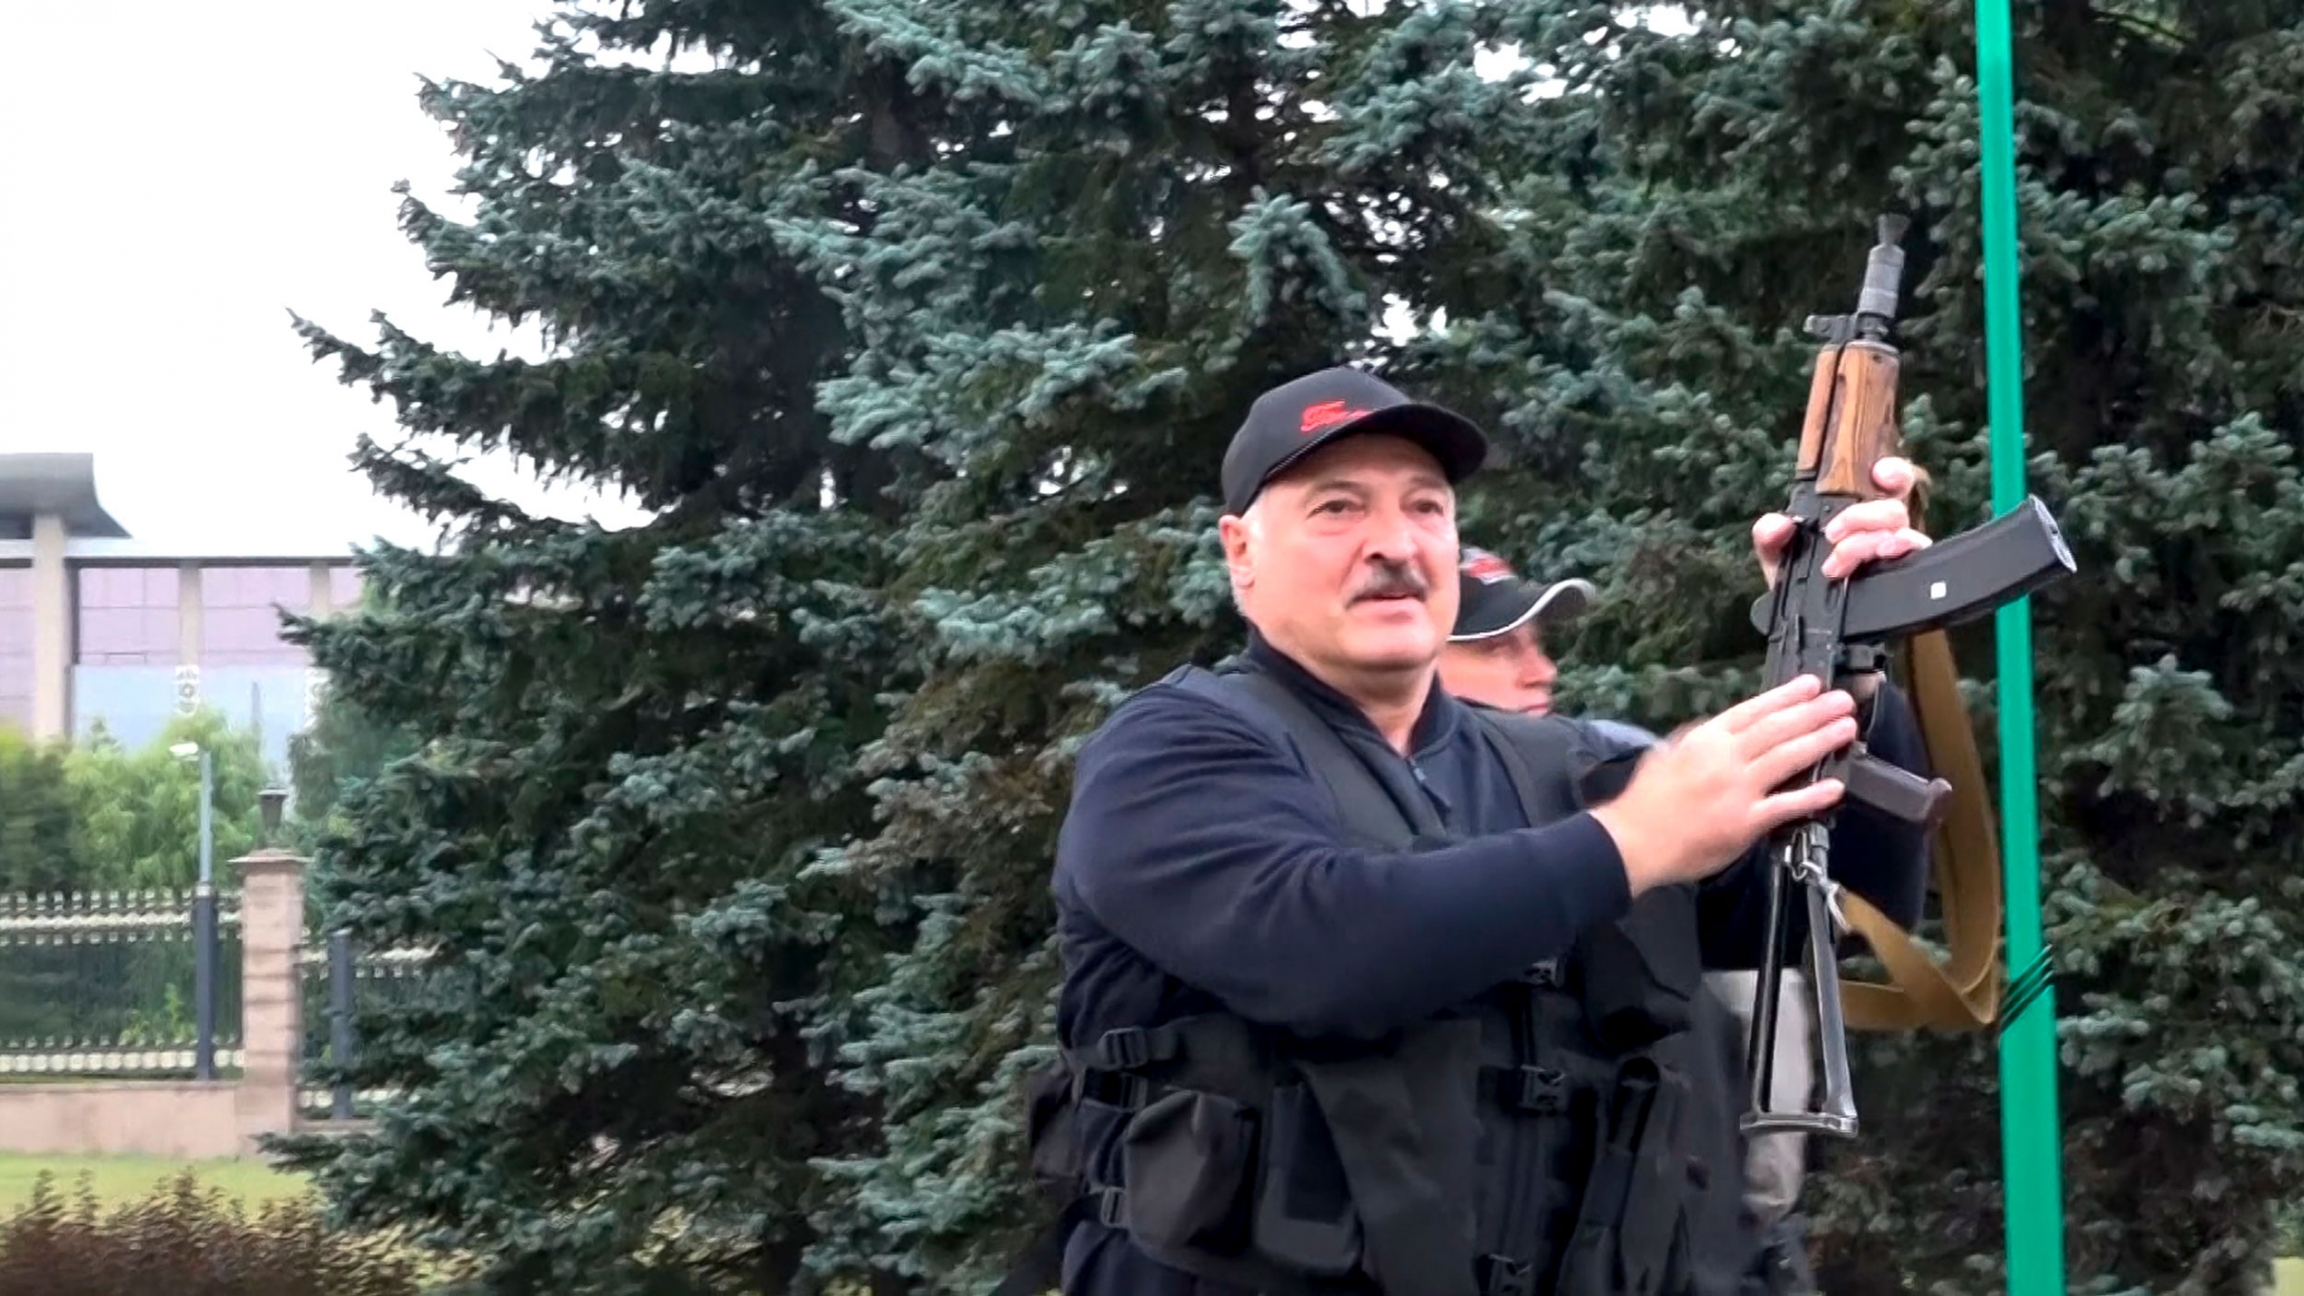 Alexander Lukashenko is shown wearing a hat and black vest while holding an assault rifle in the air.